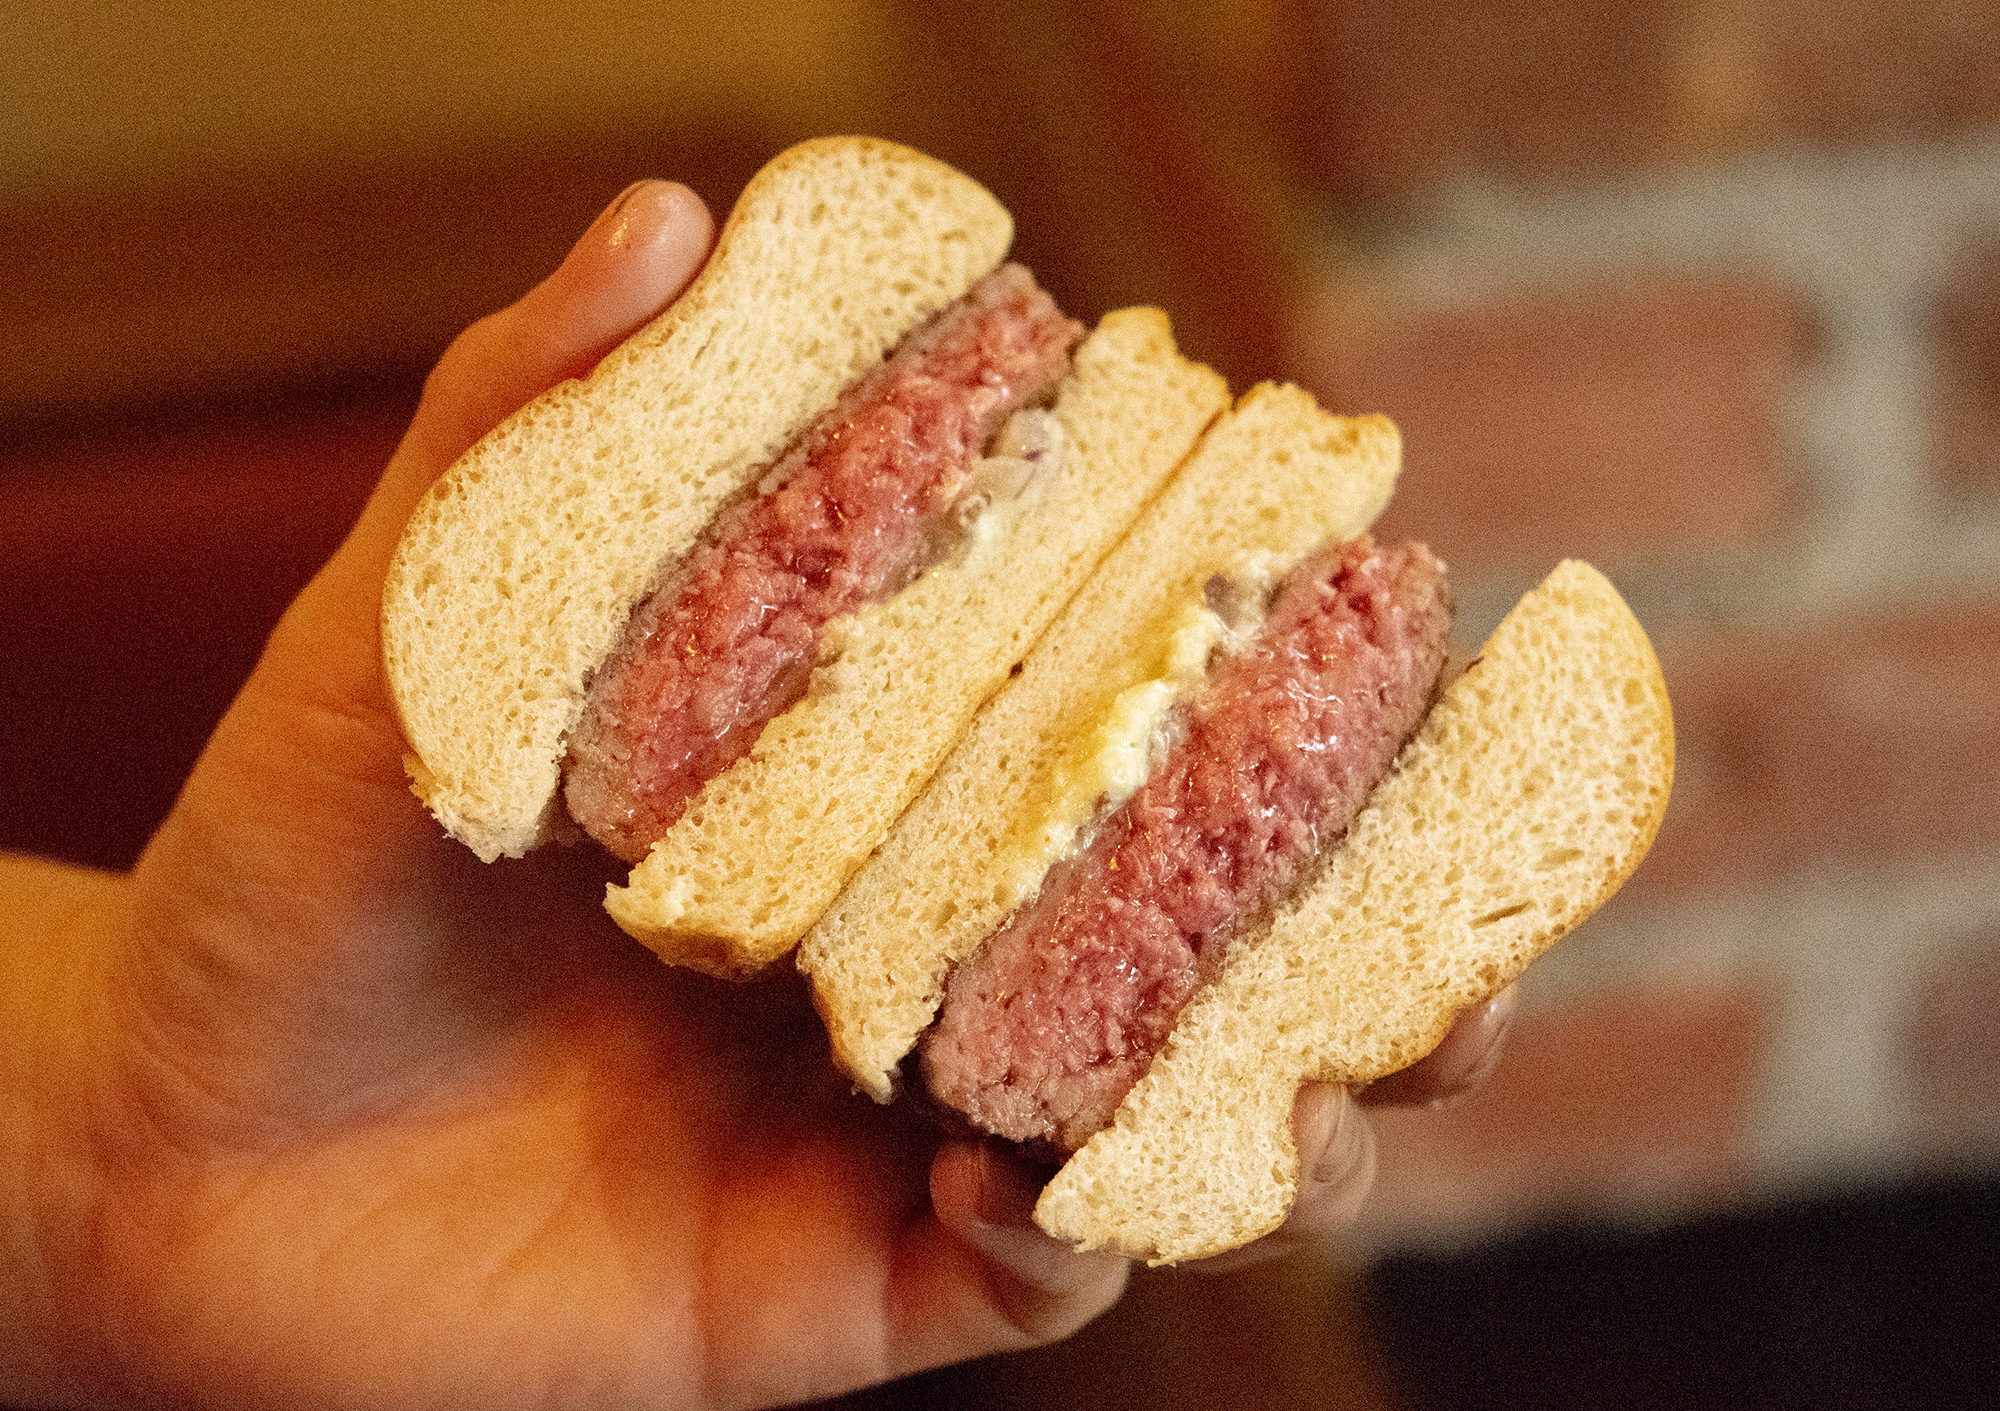 Burger_Cut_Small.jpg